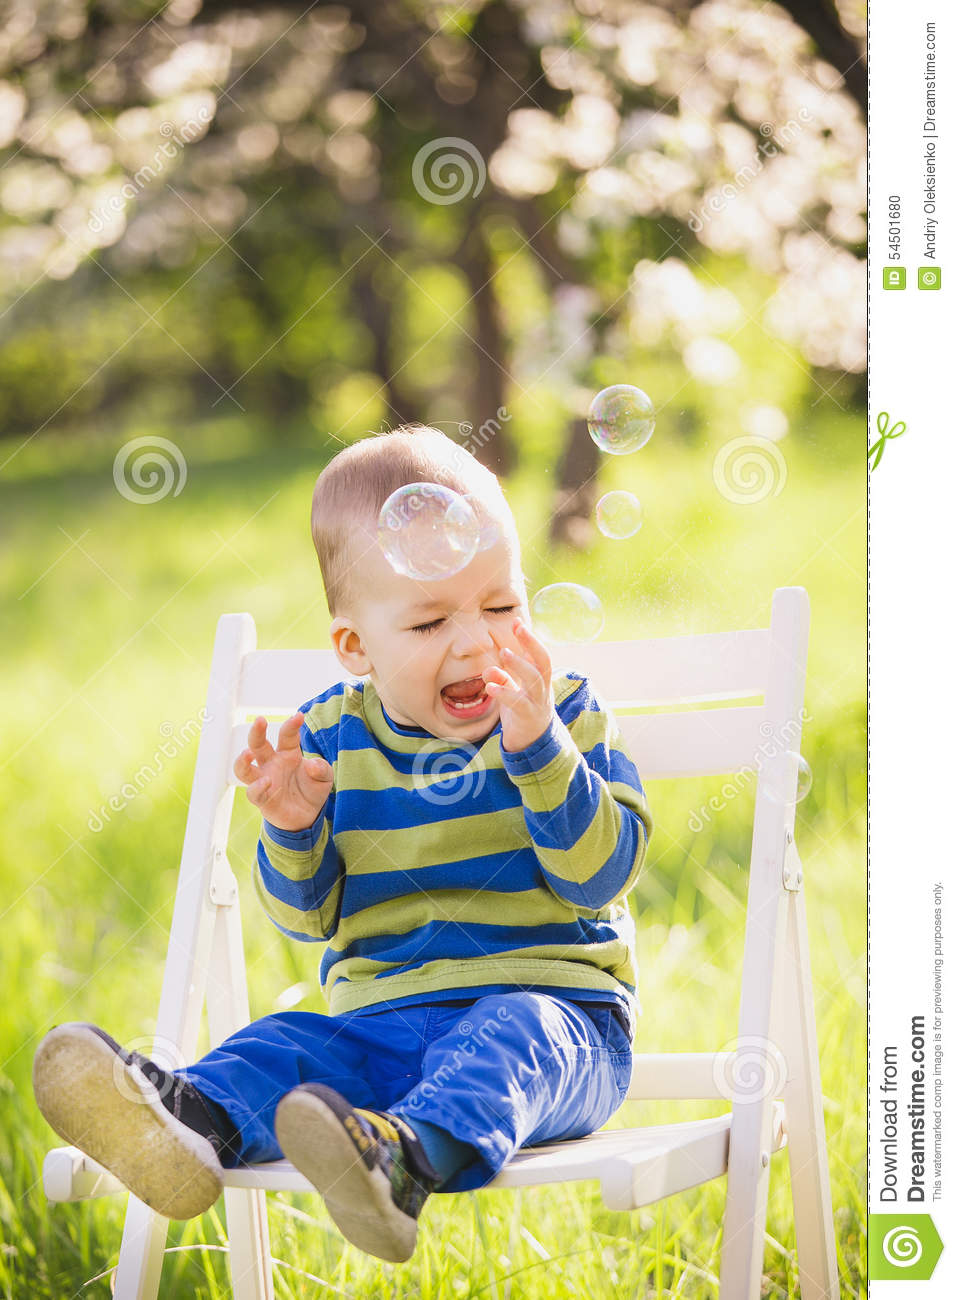 Happy child. Portrait of little boy playing with bubbles